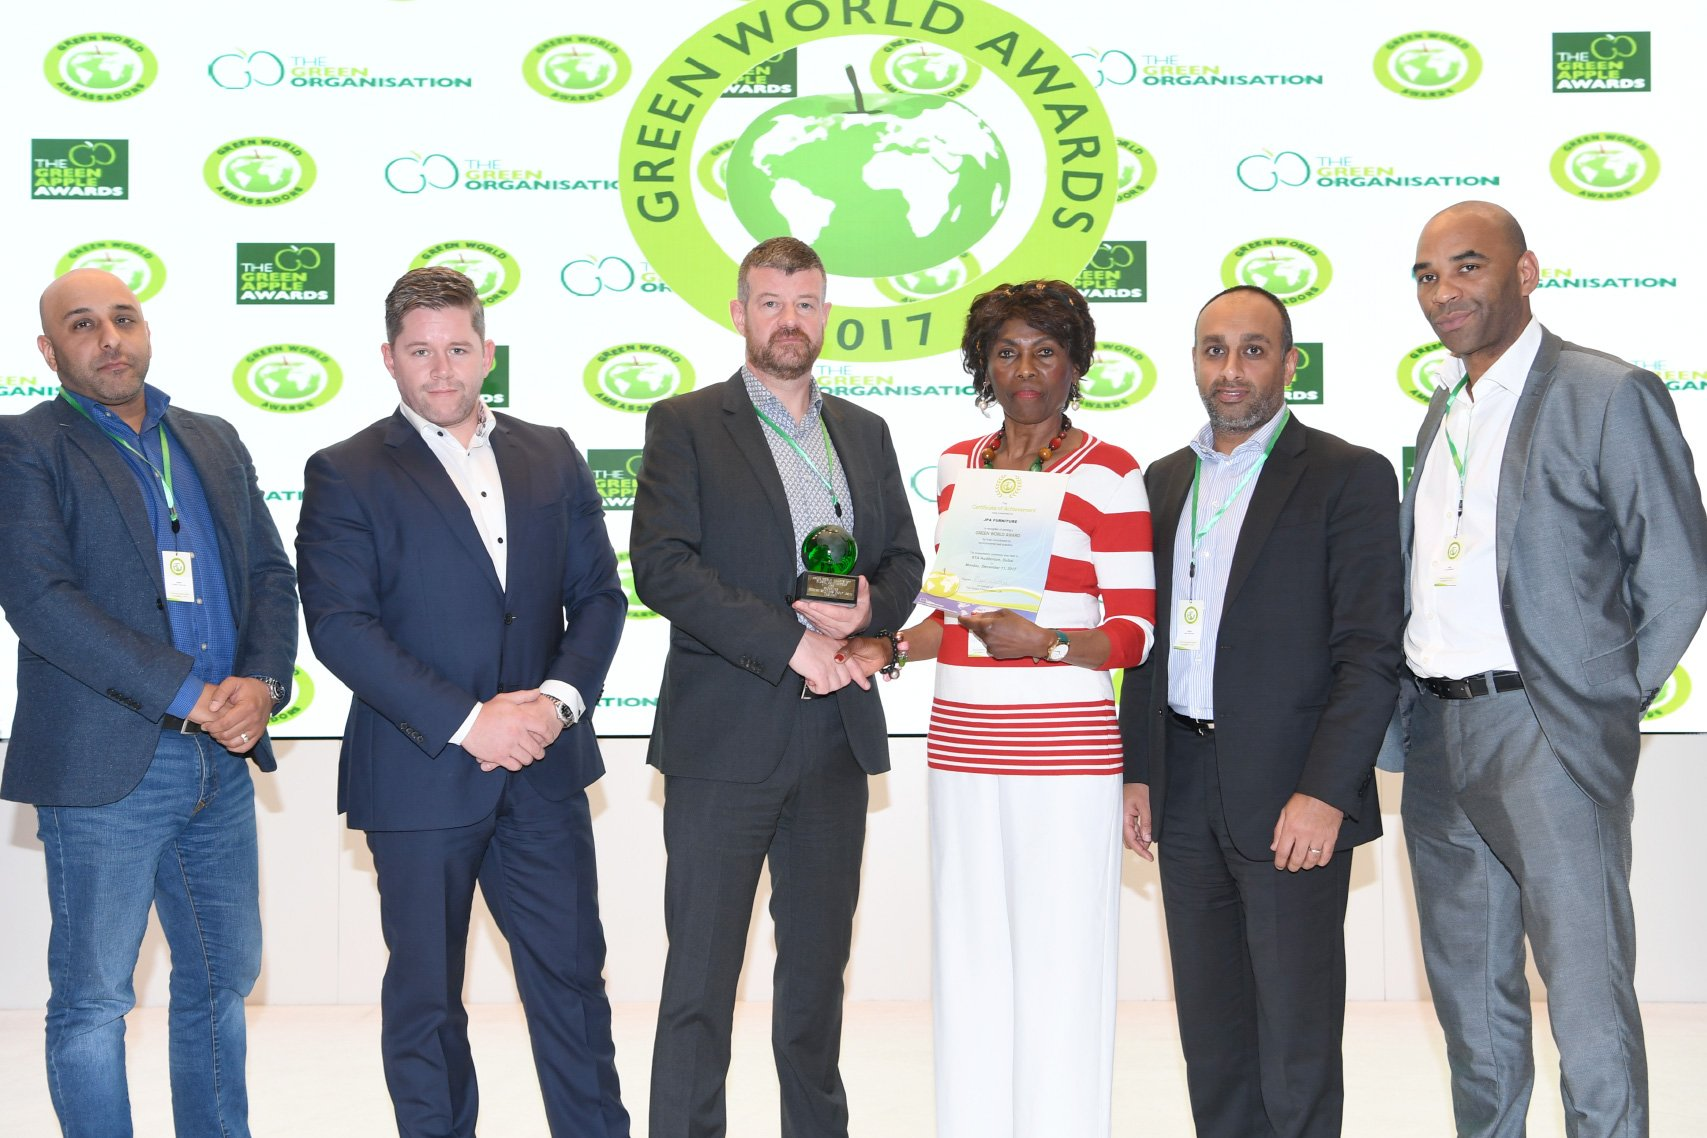 Genuine Solutions Group Wins At Green World Awards In Dubai